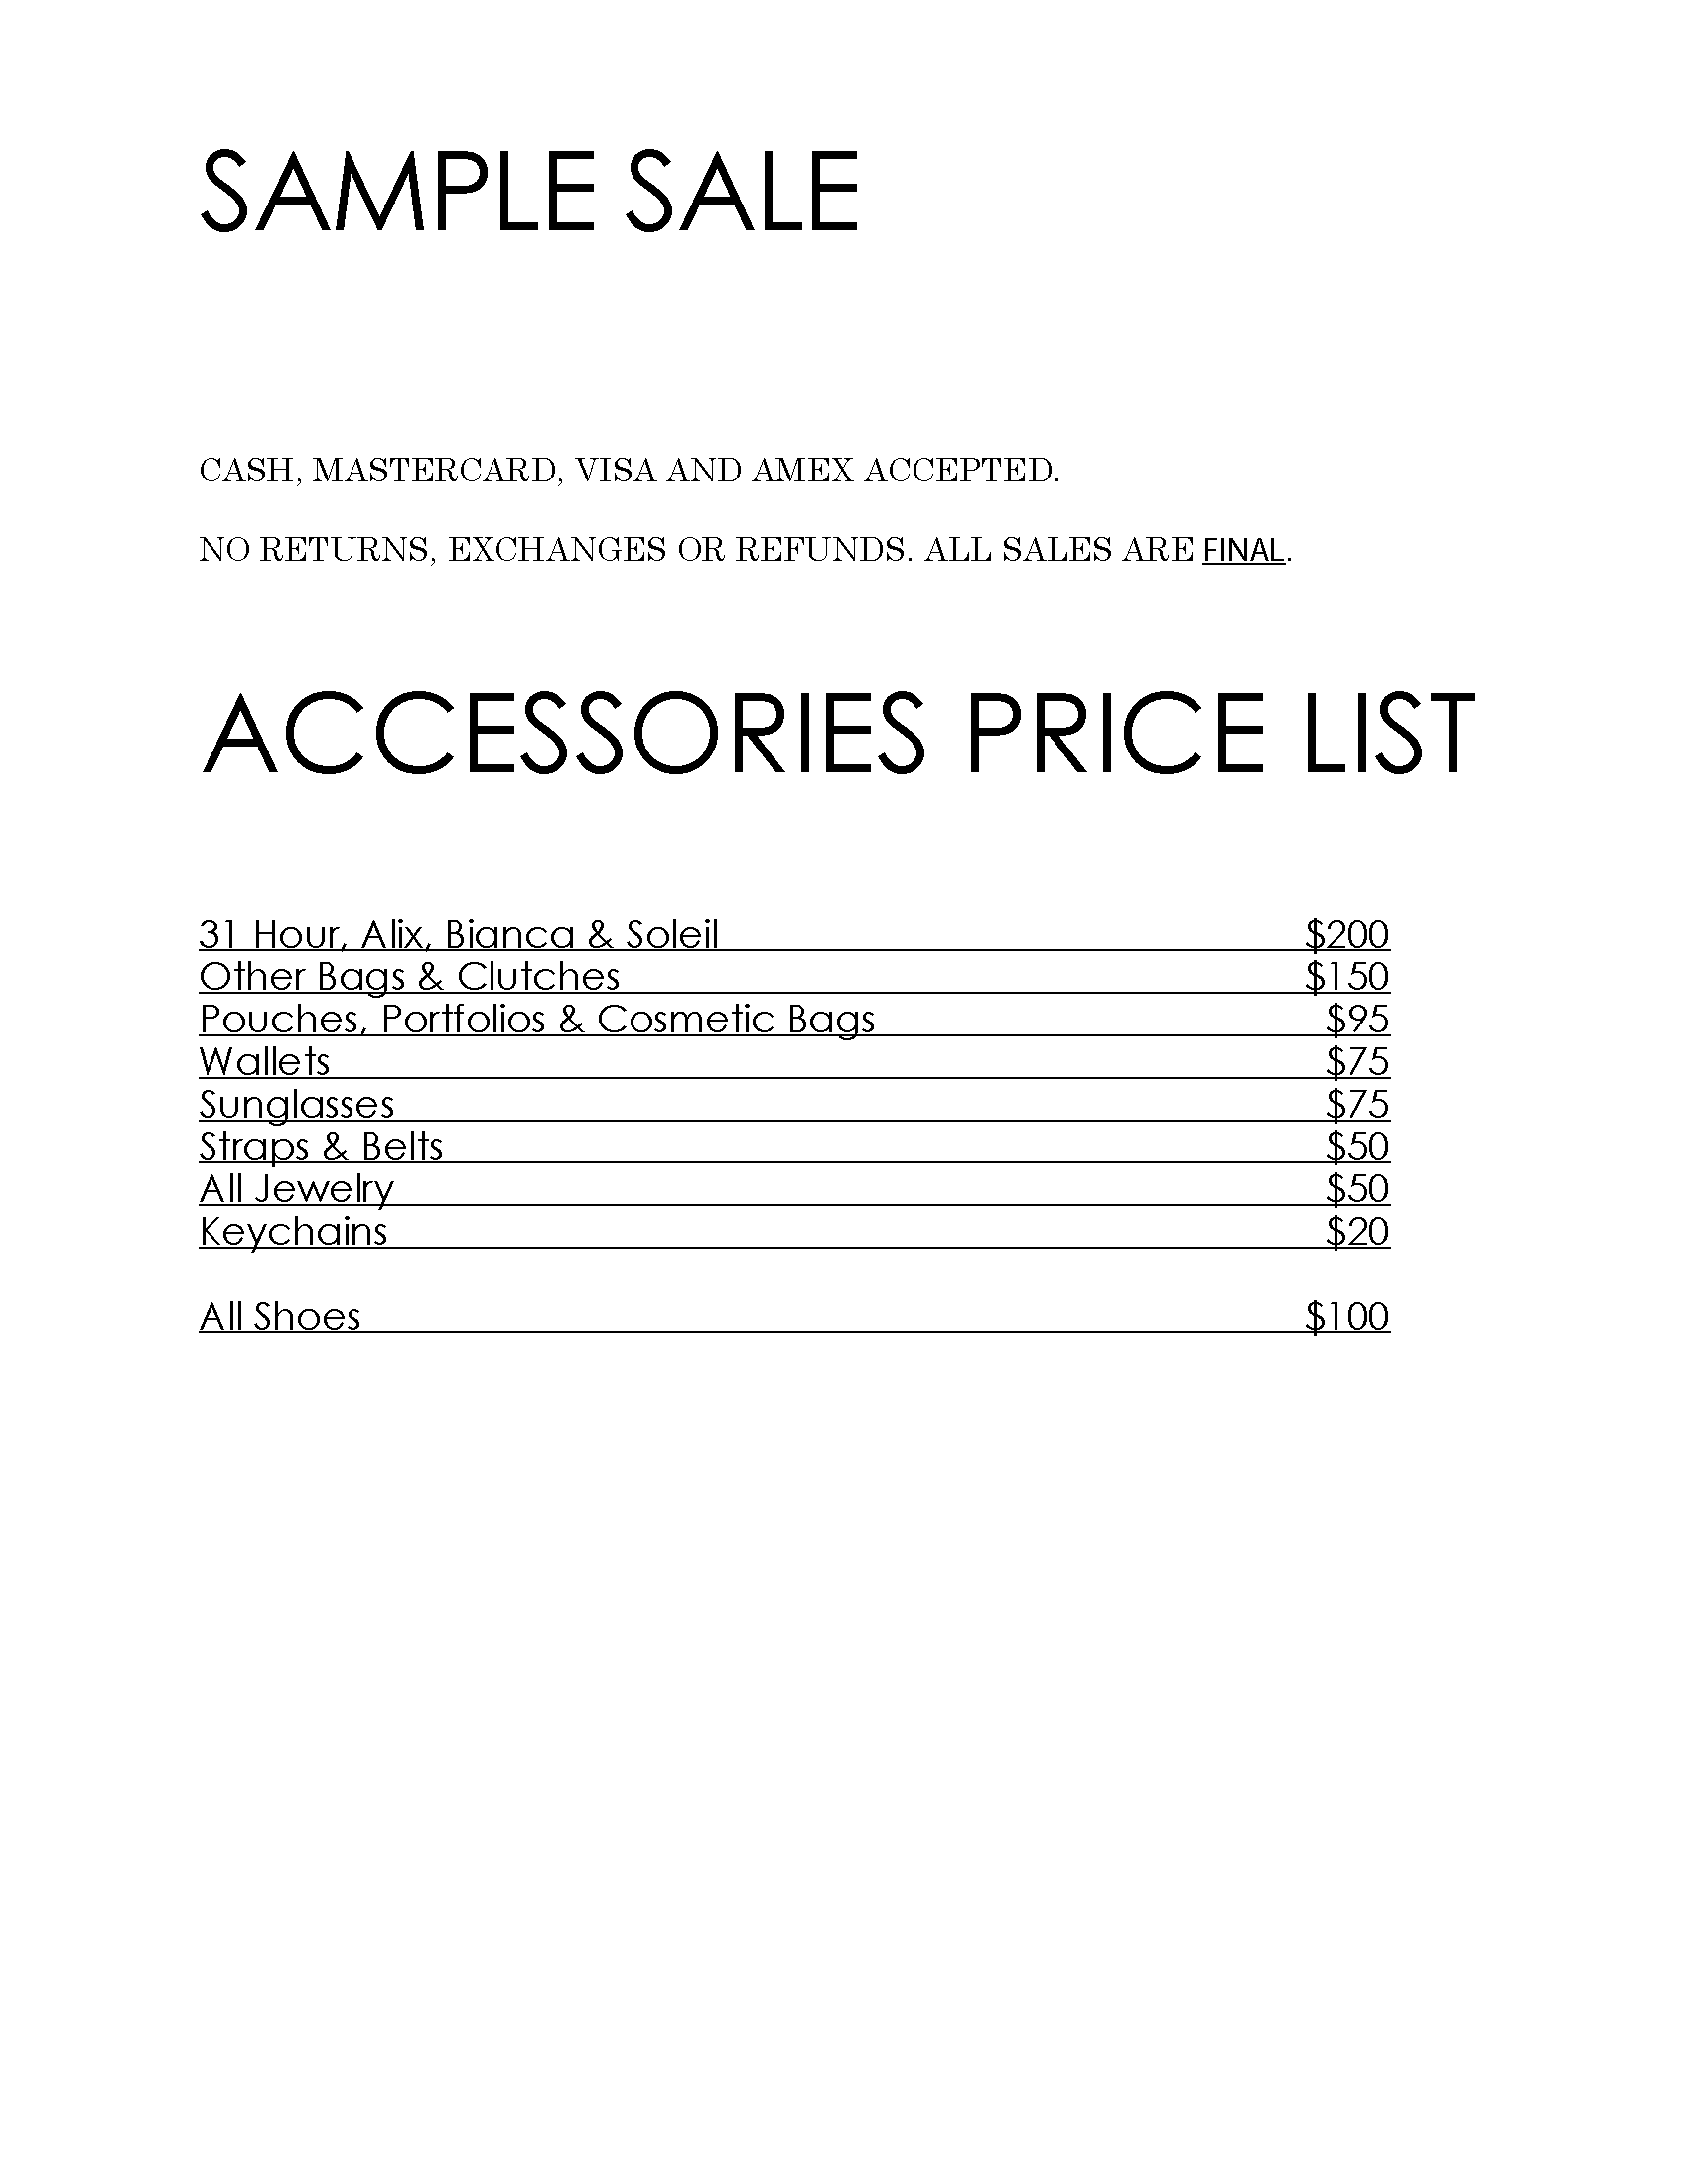 Sample Sale ACCY Price List April 2019 (002) R1.png